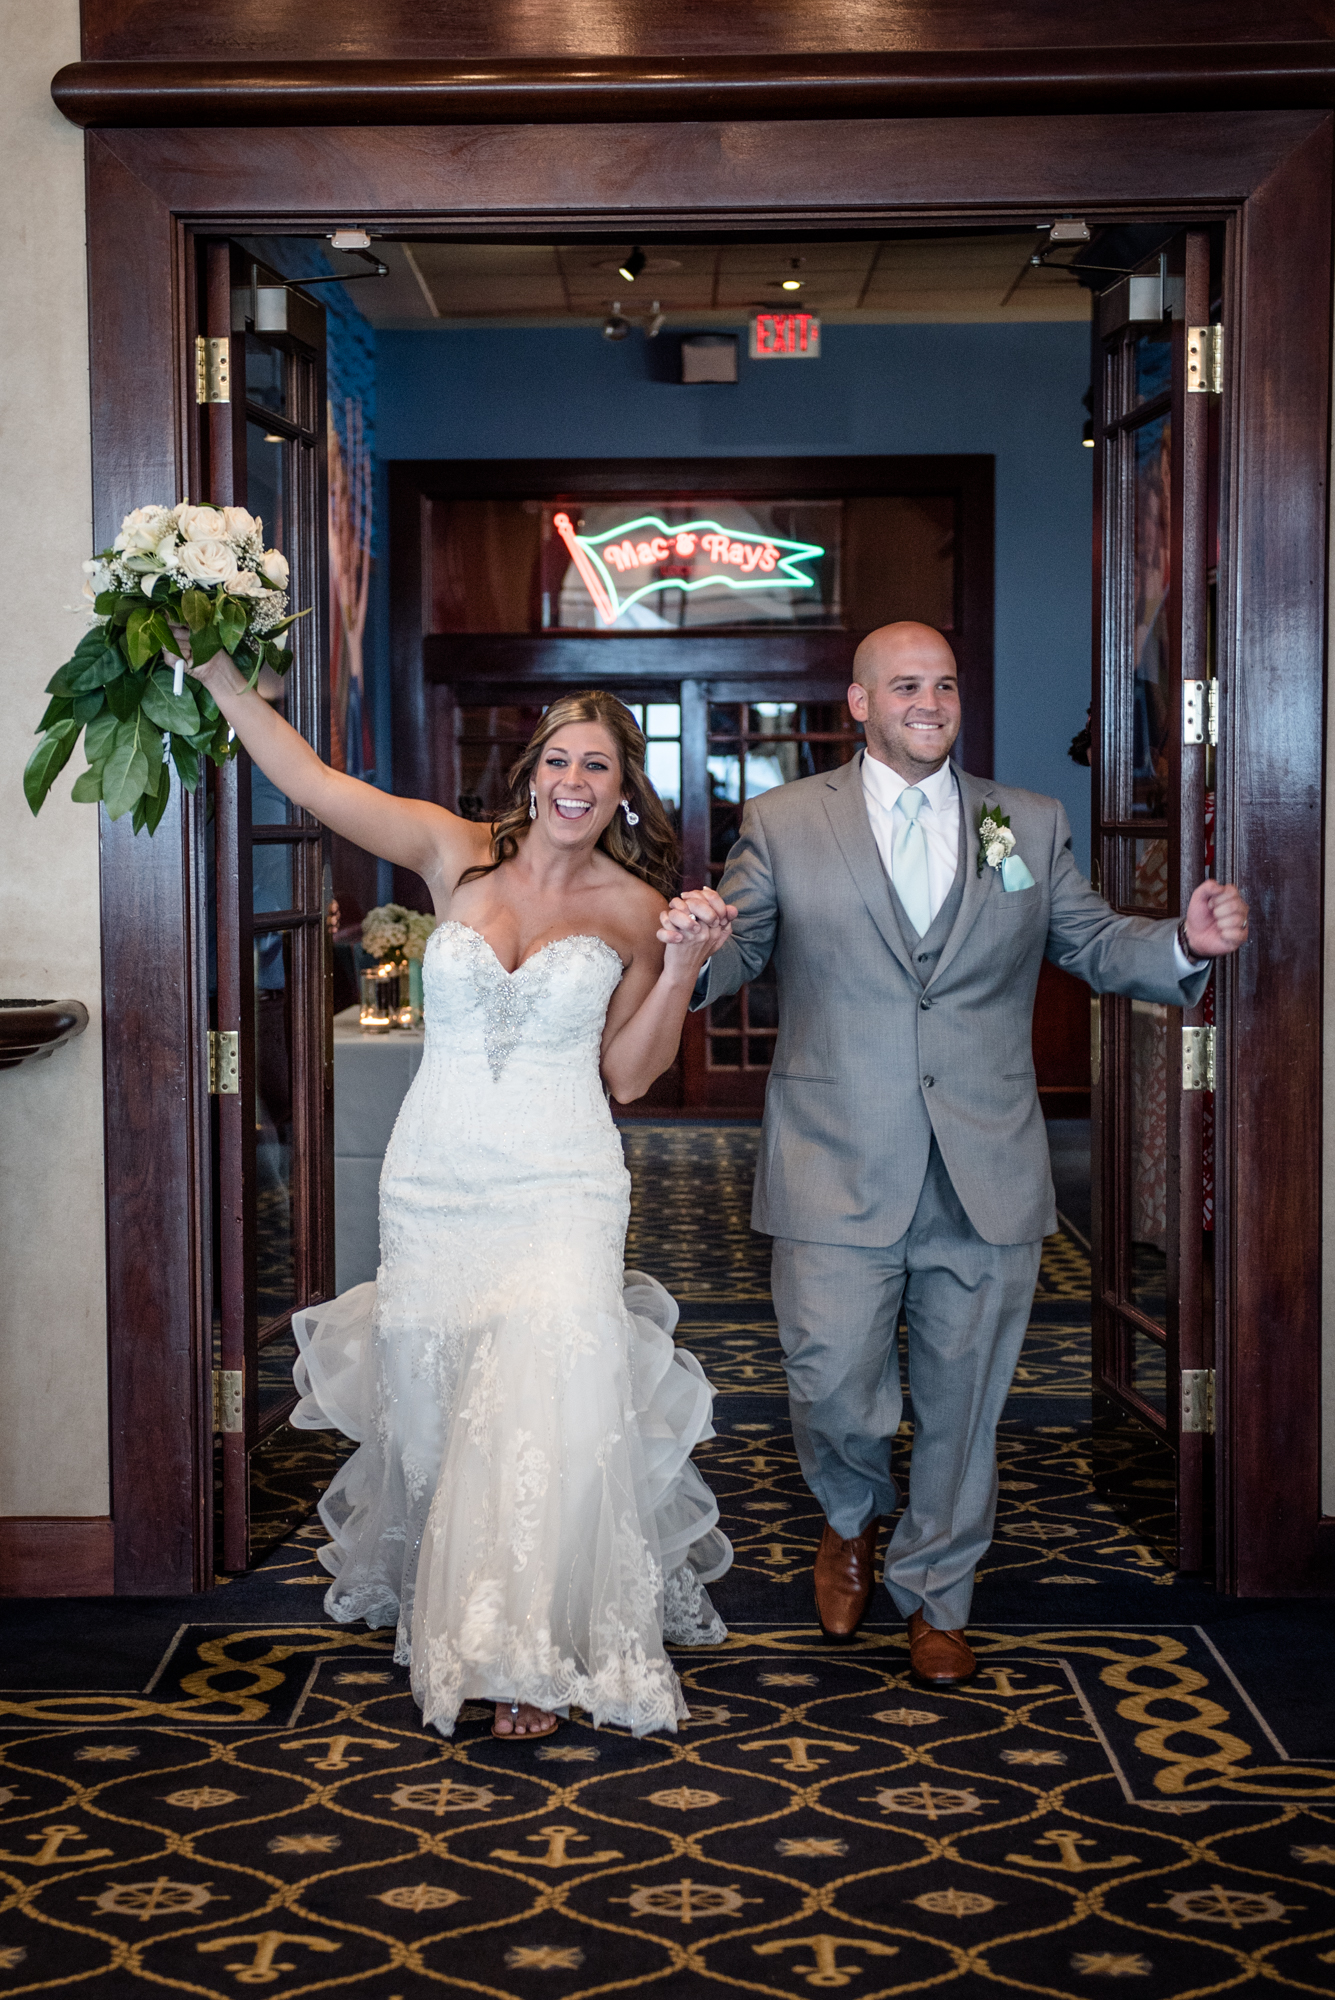 Detriot Wedding Photographer 41.jpg